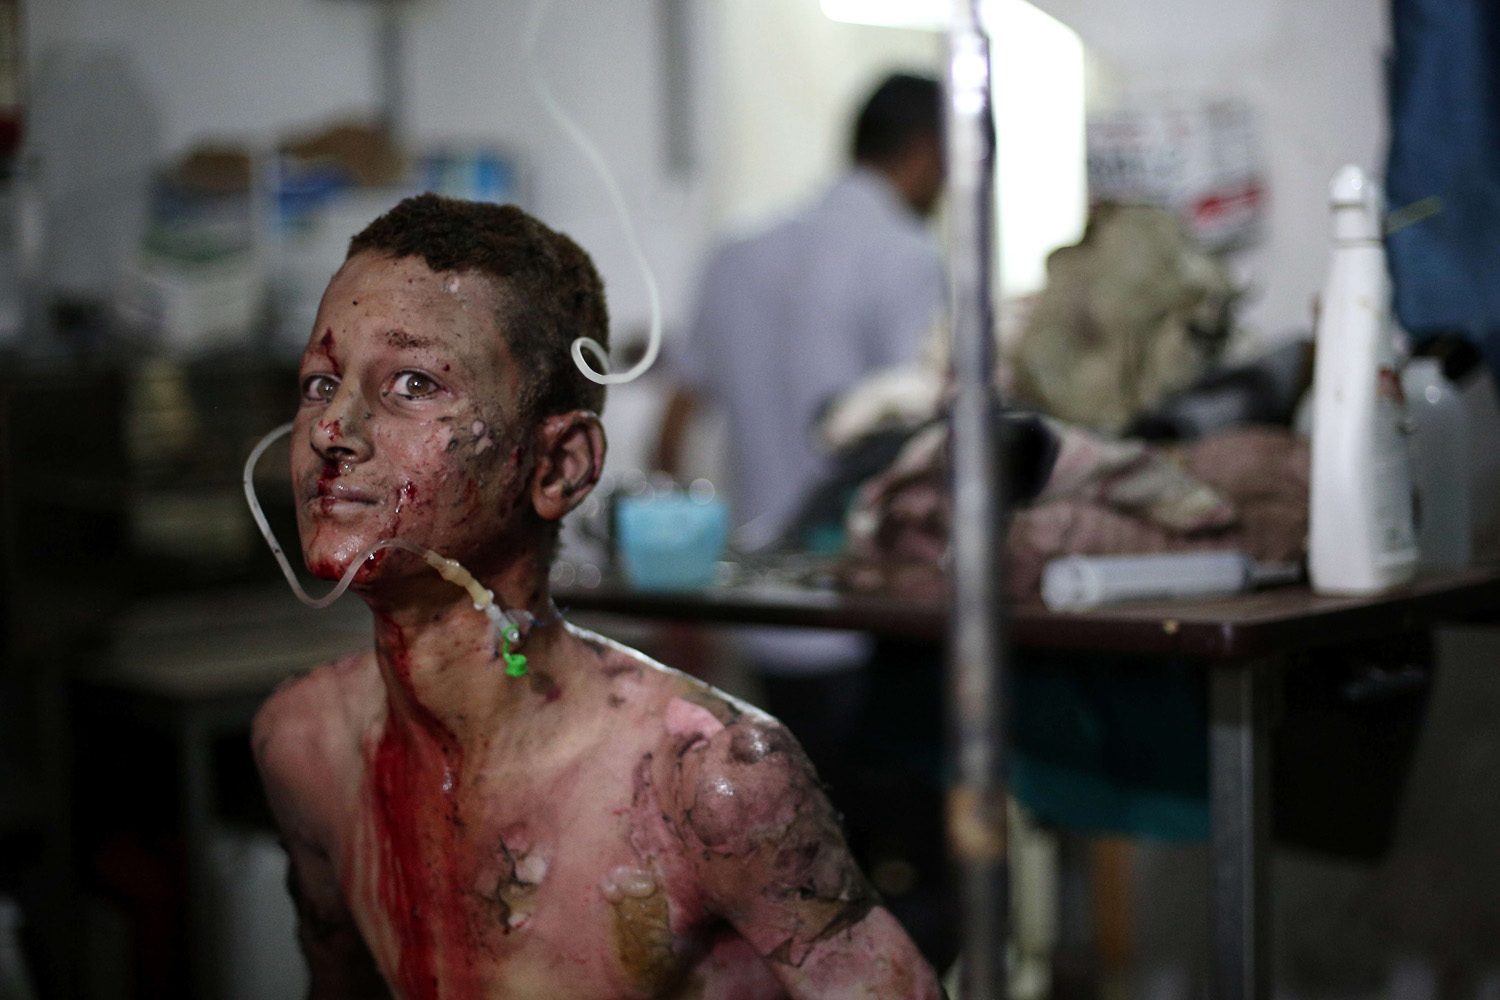 Jun. 28, 2014. A seriously wounded Syrian youth looks on as he is treated at a makeshift hospital on  following a reported car bomb explosion at a popular market in the rebel-held town of Douma, northeast of the capital Damascus.